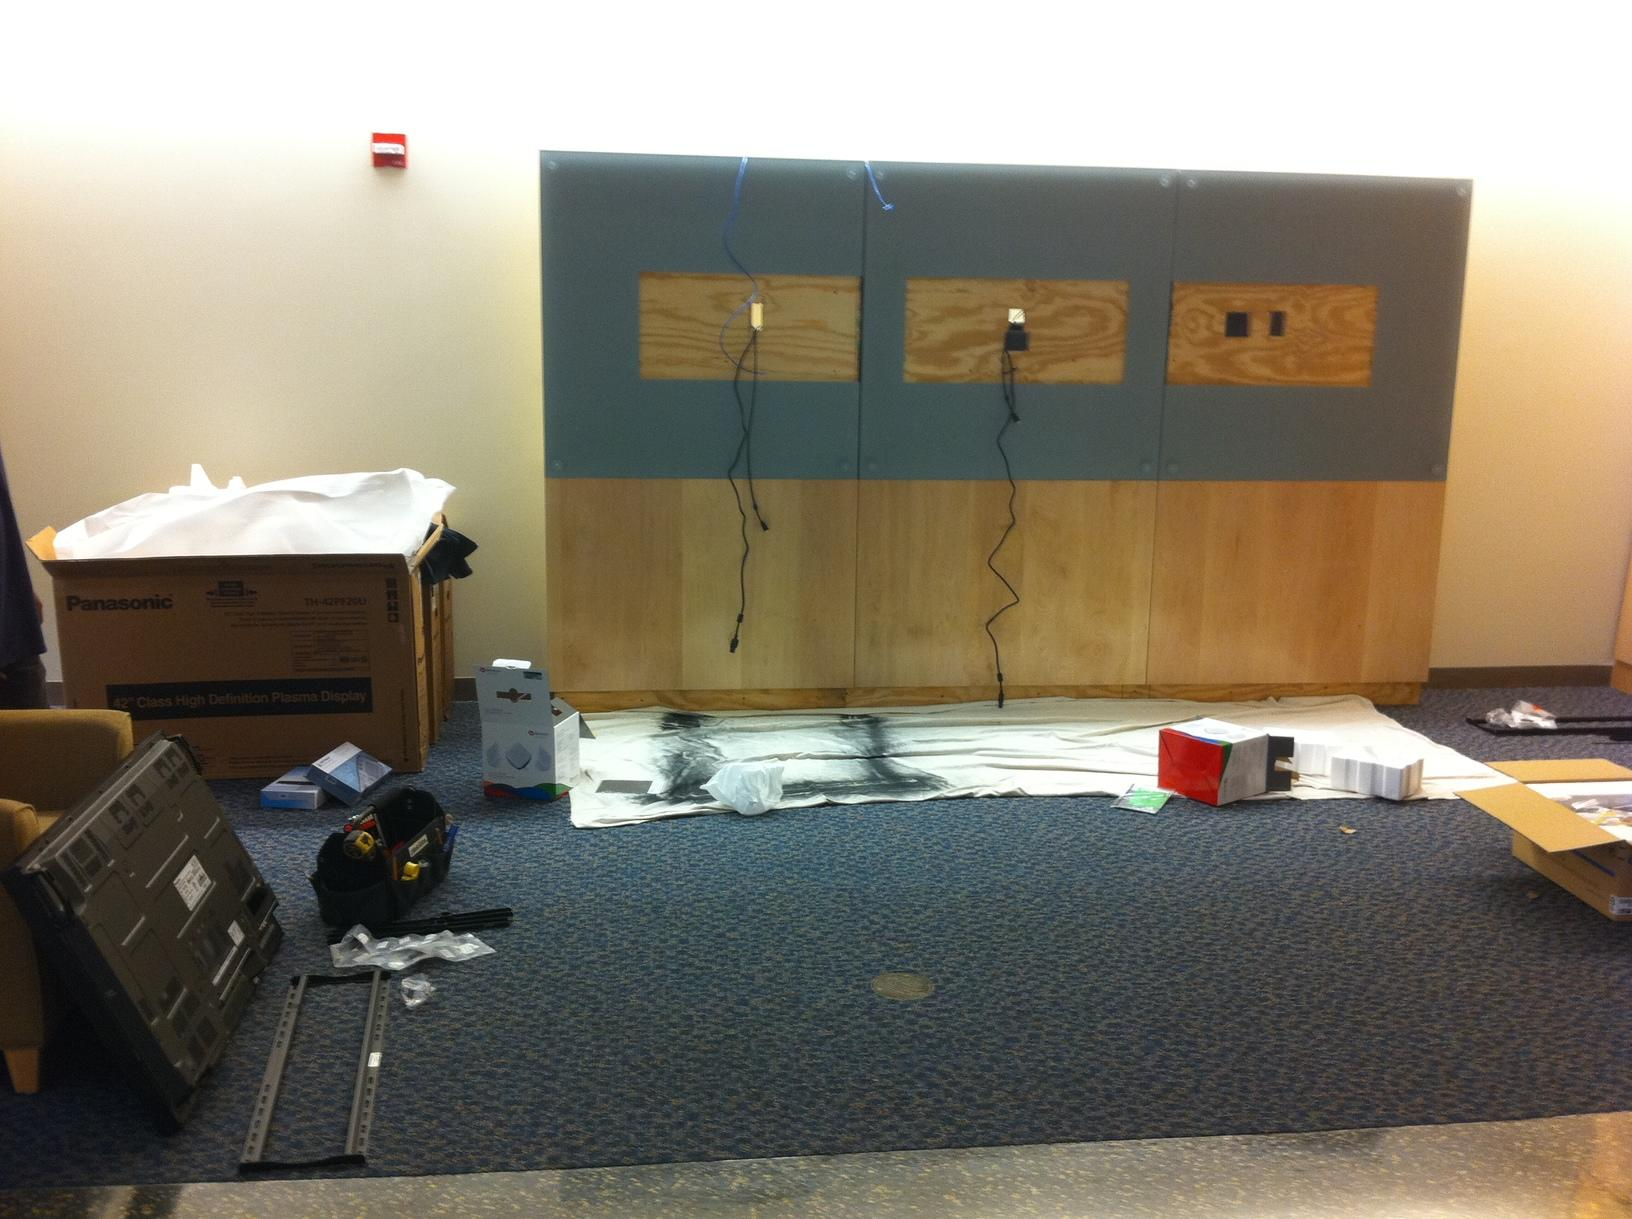 Midstate Medical Center 3 screen video wall filmstrip in Meriden, CT. - Before Photo